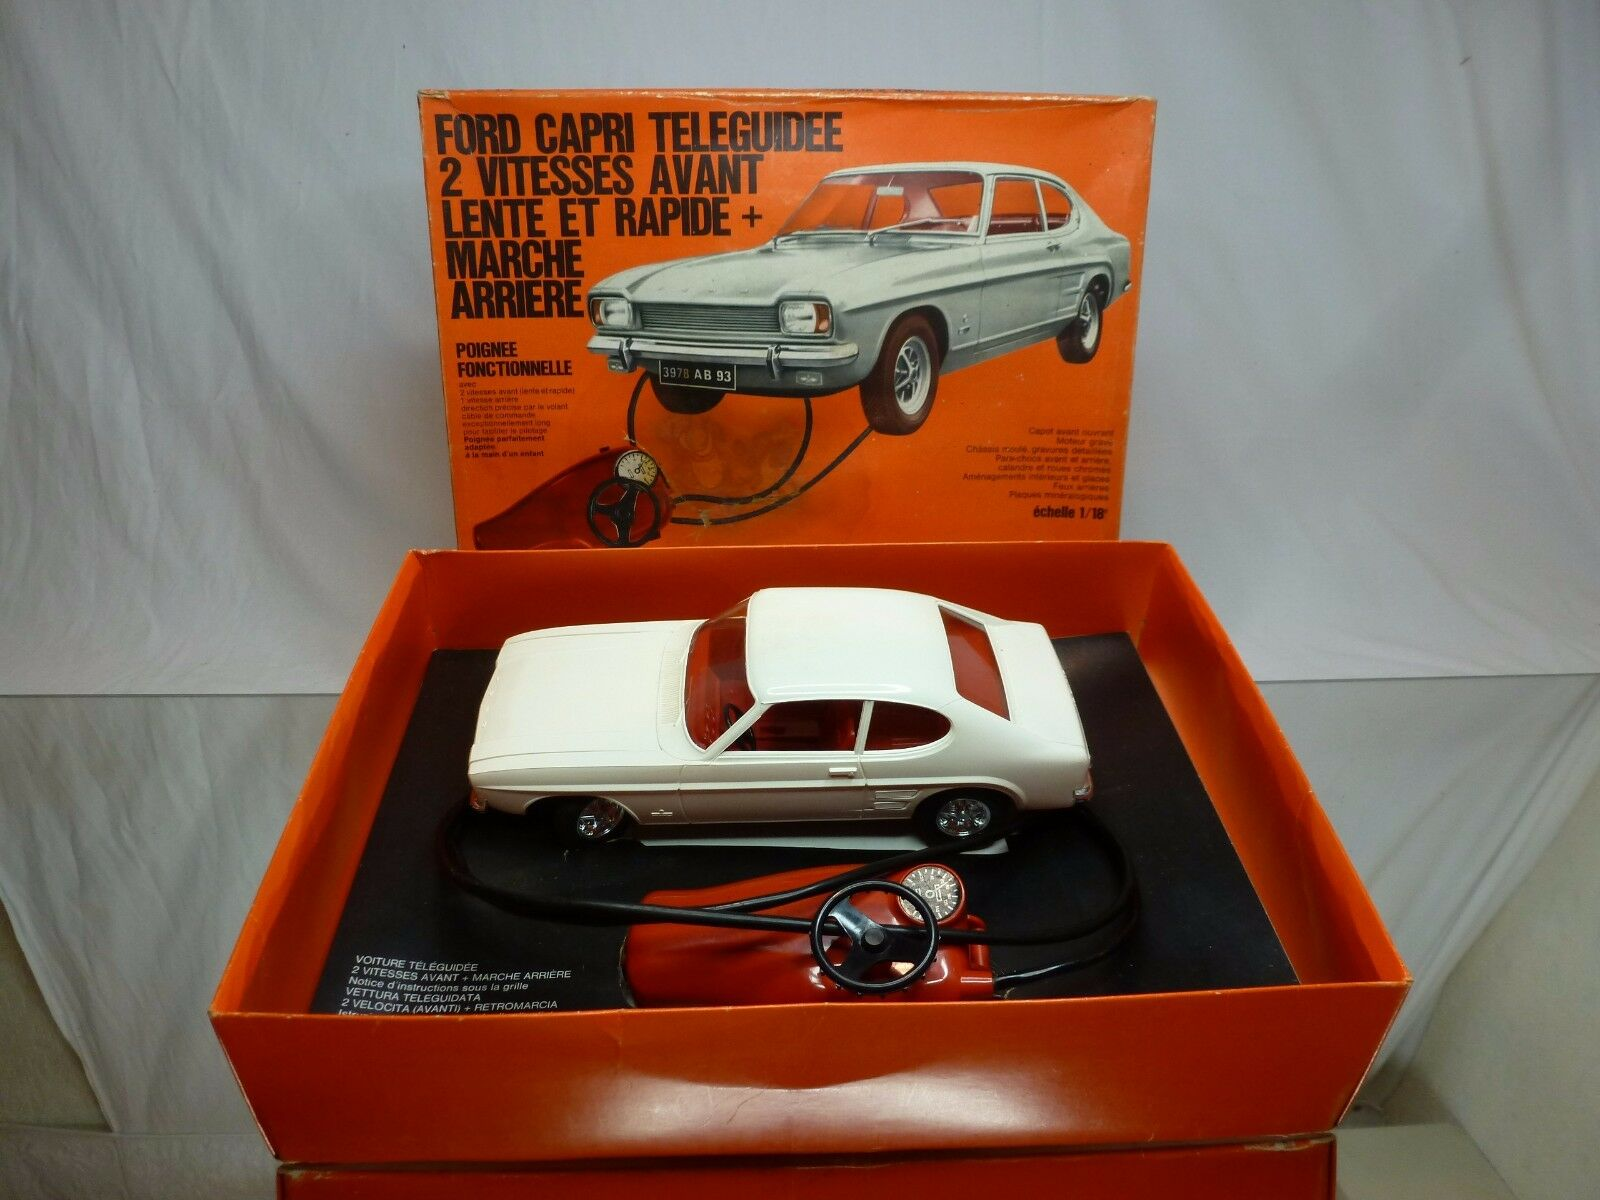 MECCANO TRIANG FORD CAPRI - BATTERY RADIO CONTROL -  blanc 1 18 RARE- GOOD IN BOX  vendre comme des petits pains